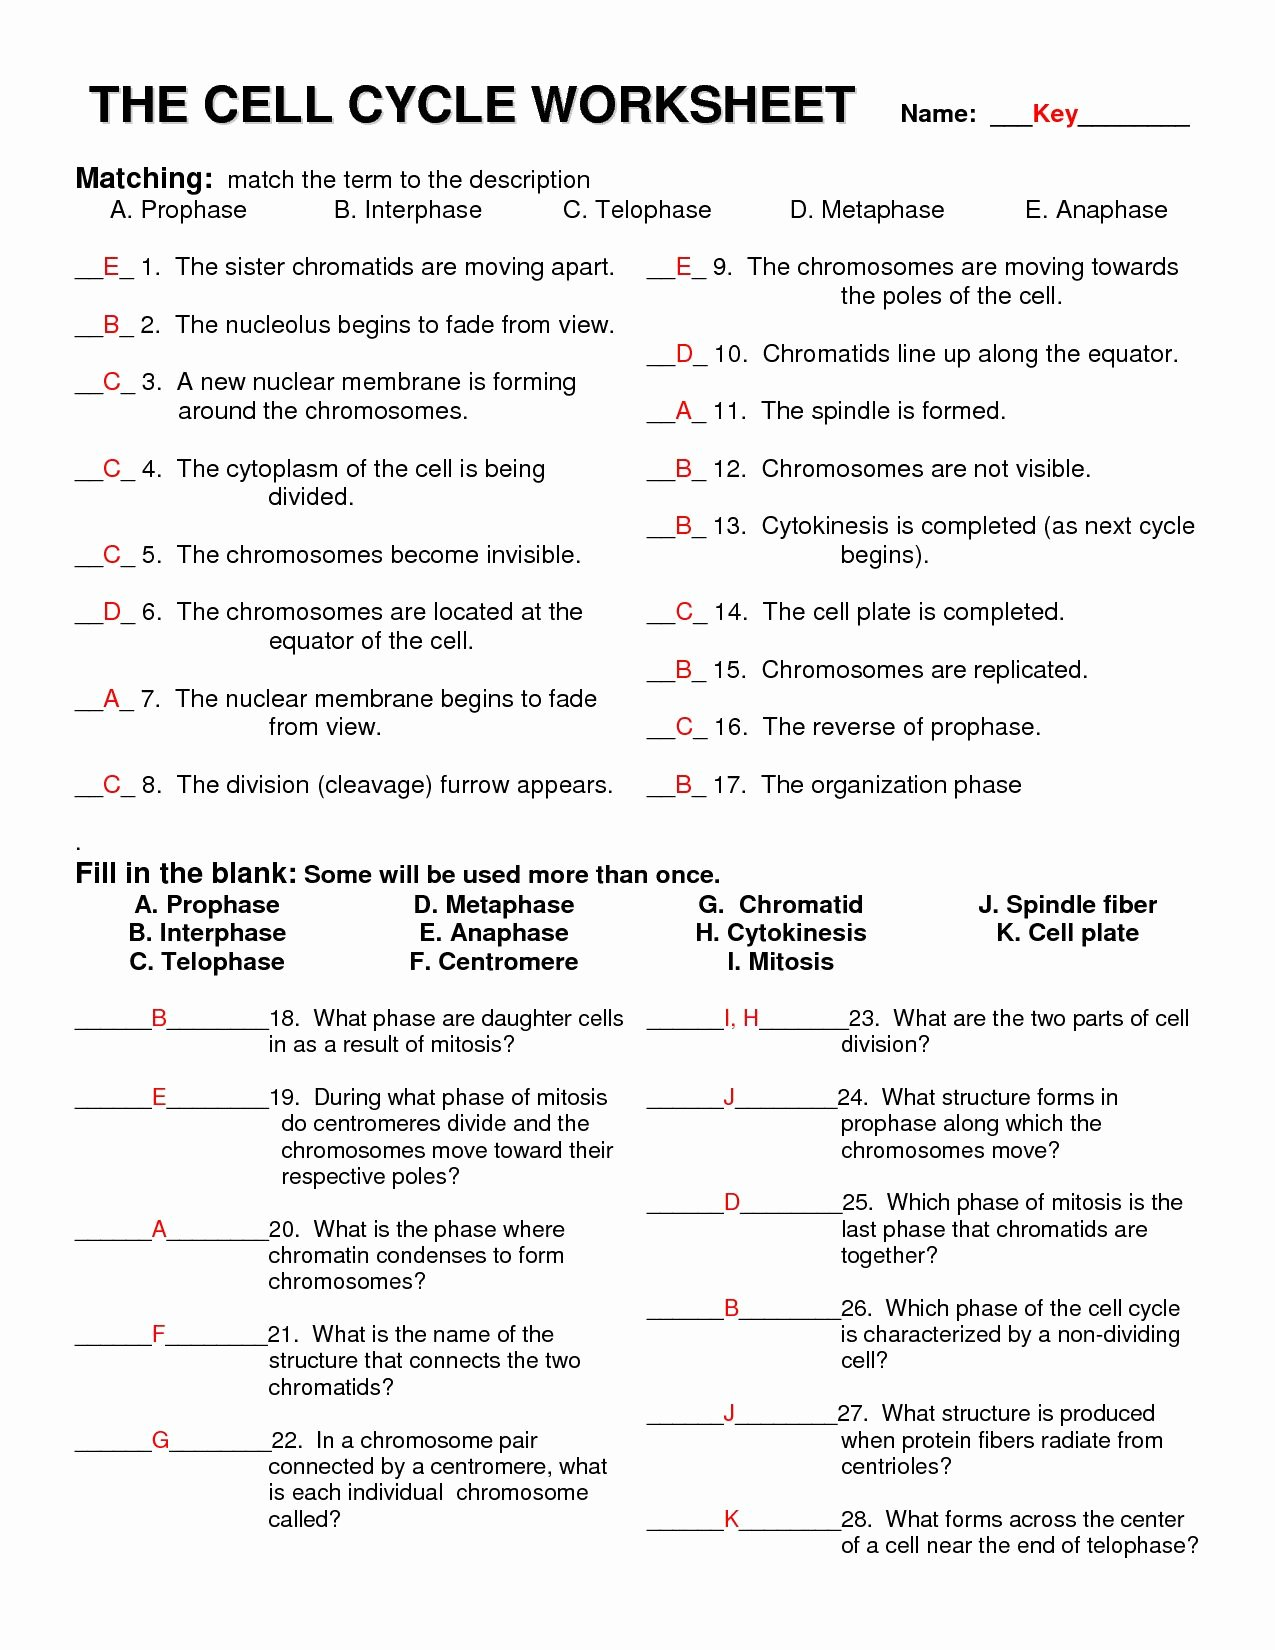 Meiosis Matching Worksheet Answer Key Kids Meiosis Matching Worksheet Answer Key Best 13 Best